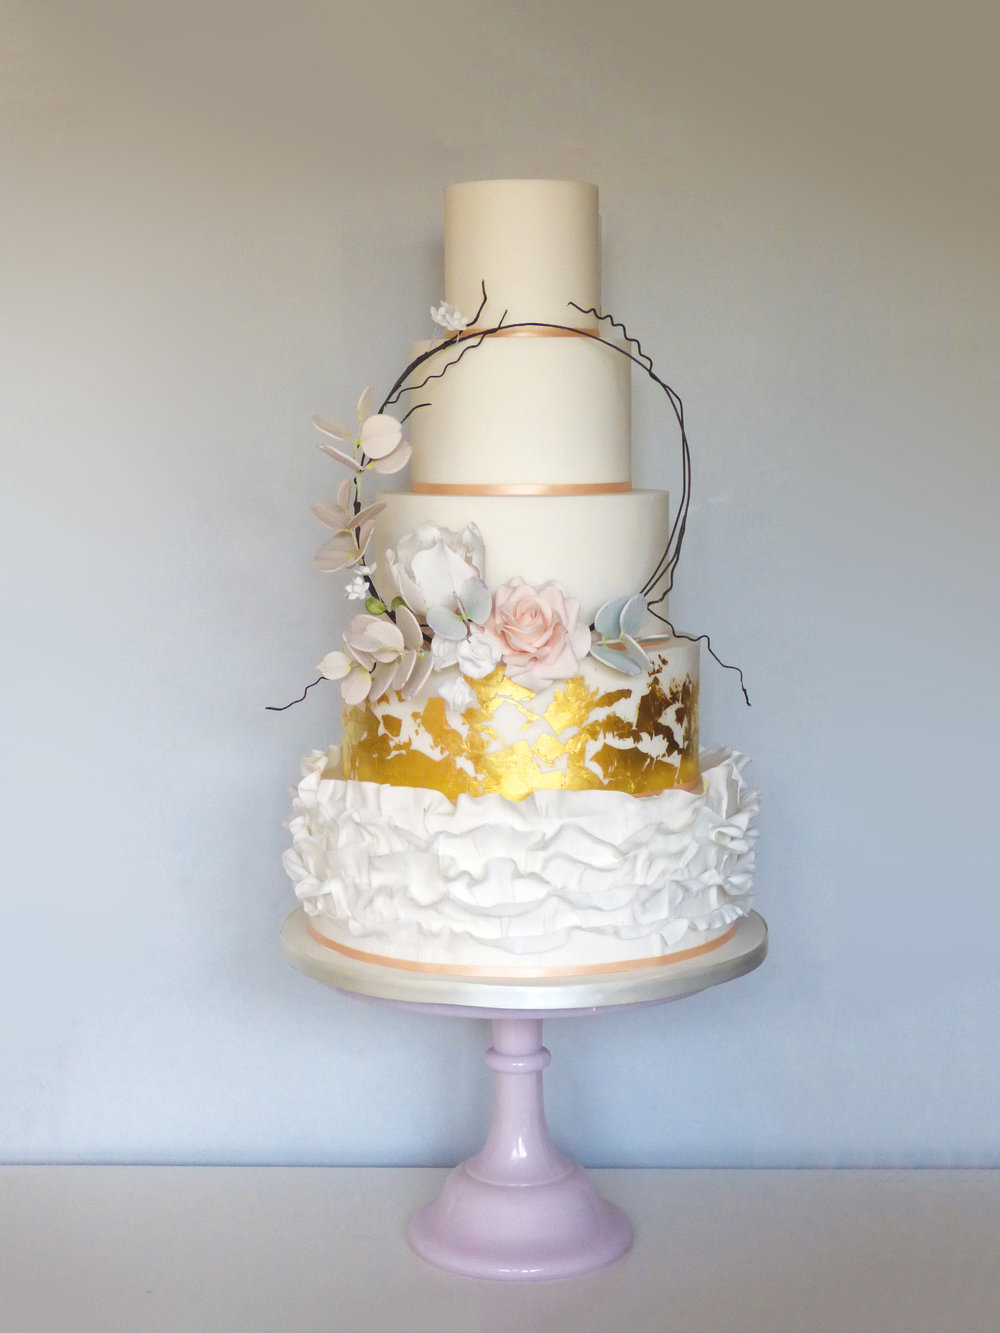 An ethereal, pretty wedding cake with light frills and gold leaf and a floral hoop for boho weddings or enchanted woodland themes.